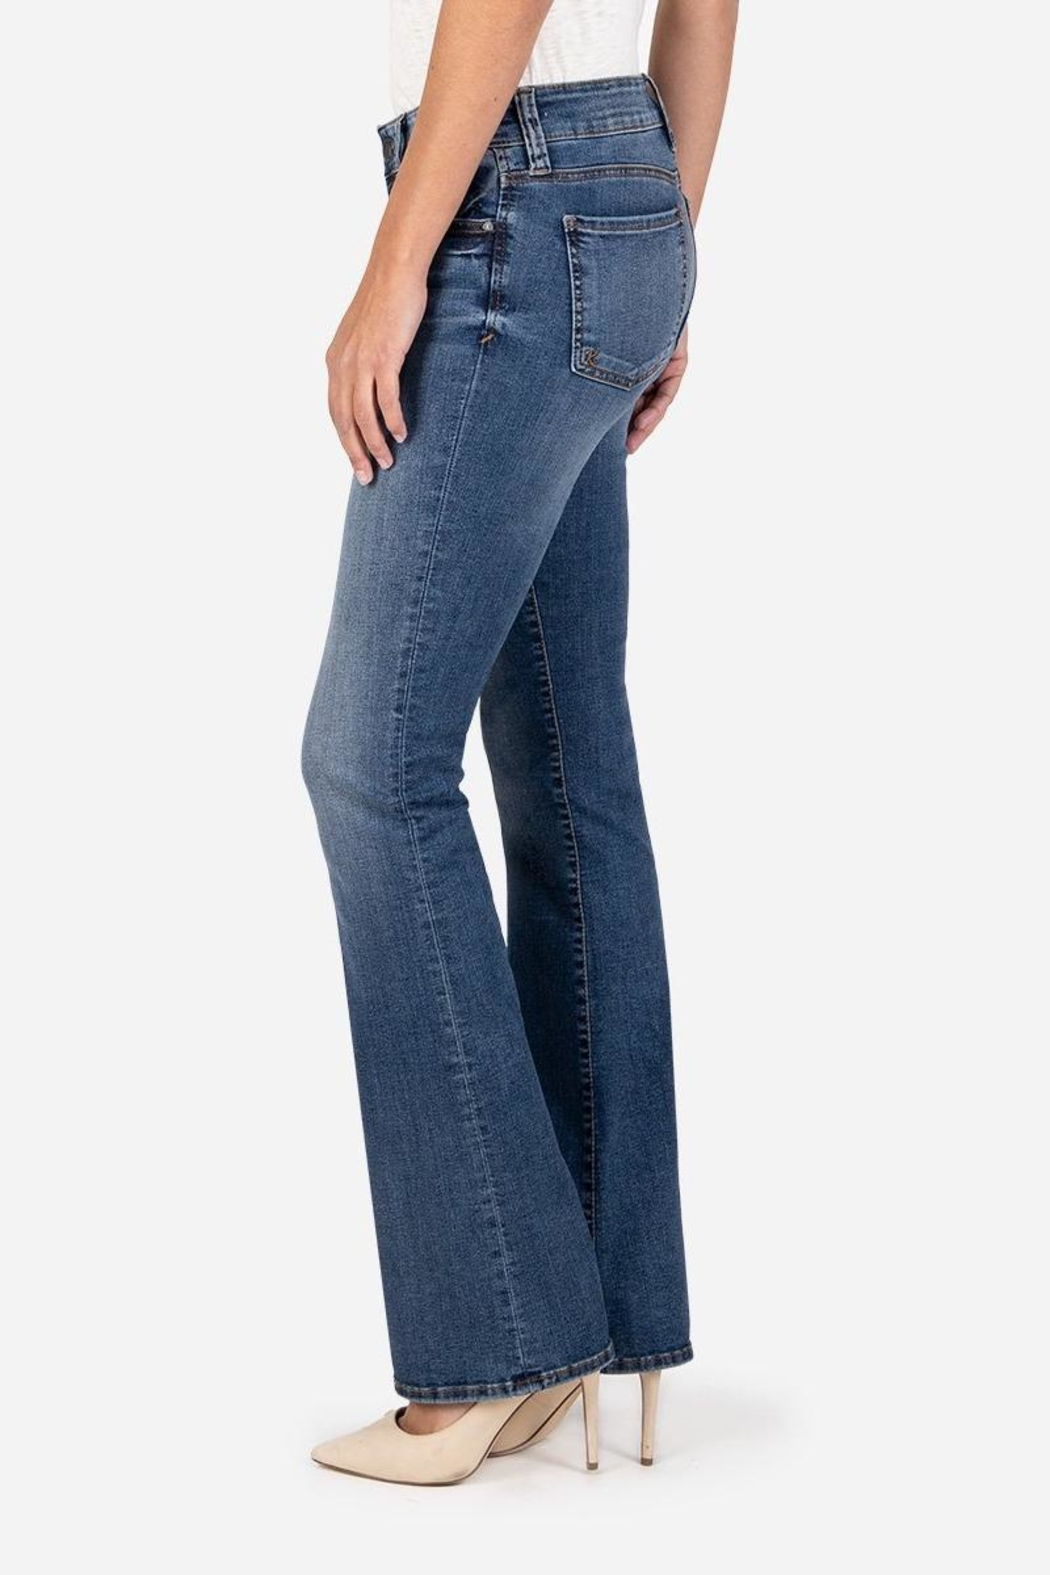 Kut from the Kloth Natalie Bootcut Jeans - Side Cropped Image